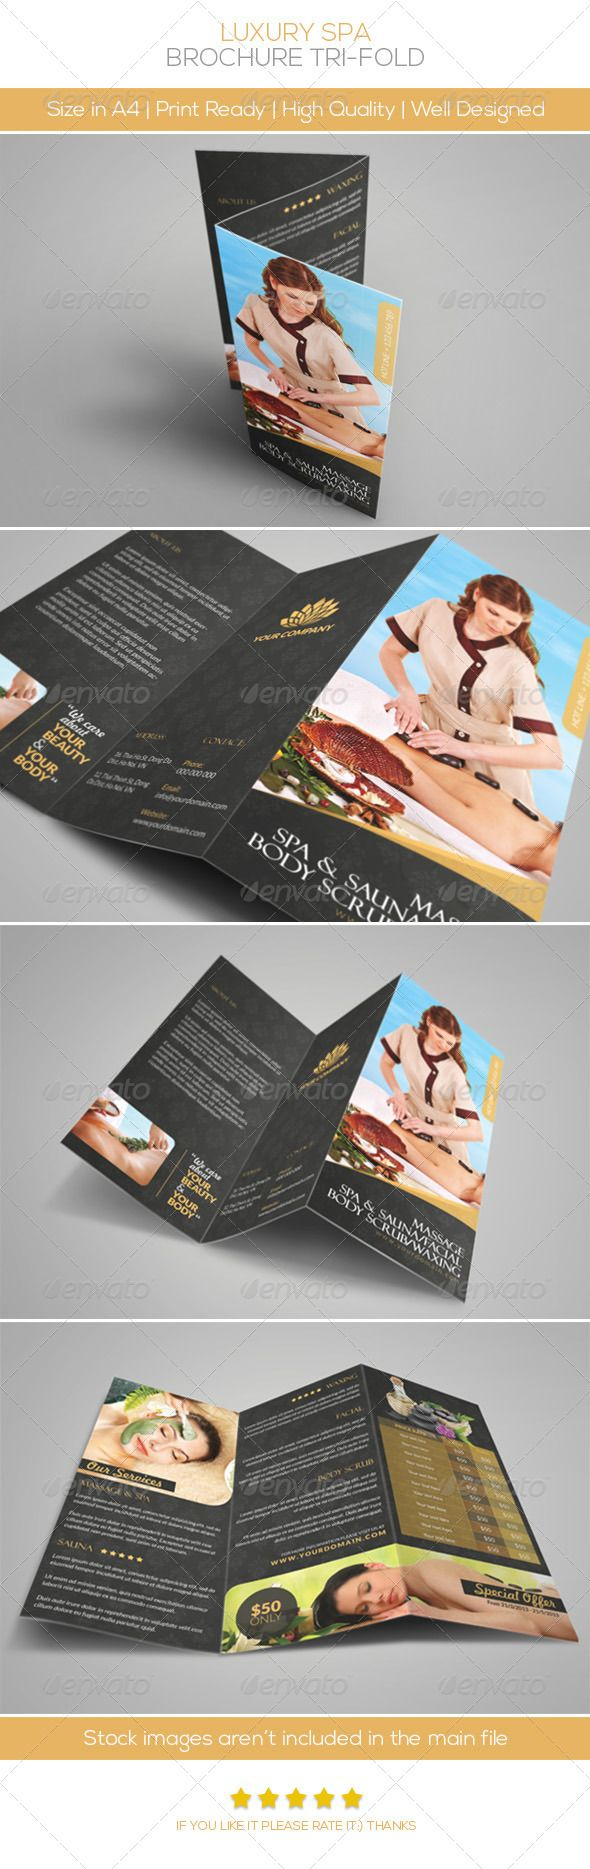 Luxury Spa Brochure Tri-fold - PSD Template • Only available here ...